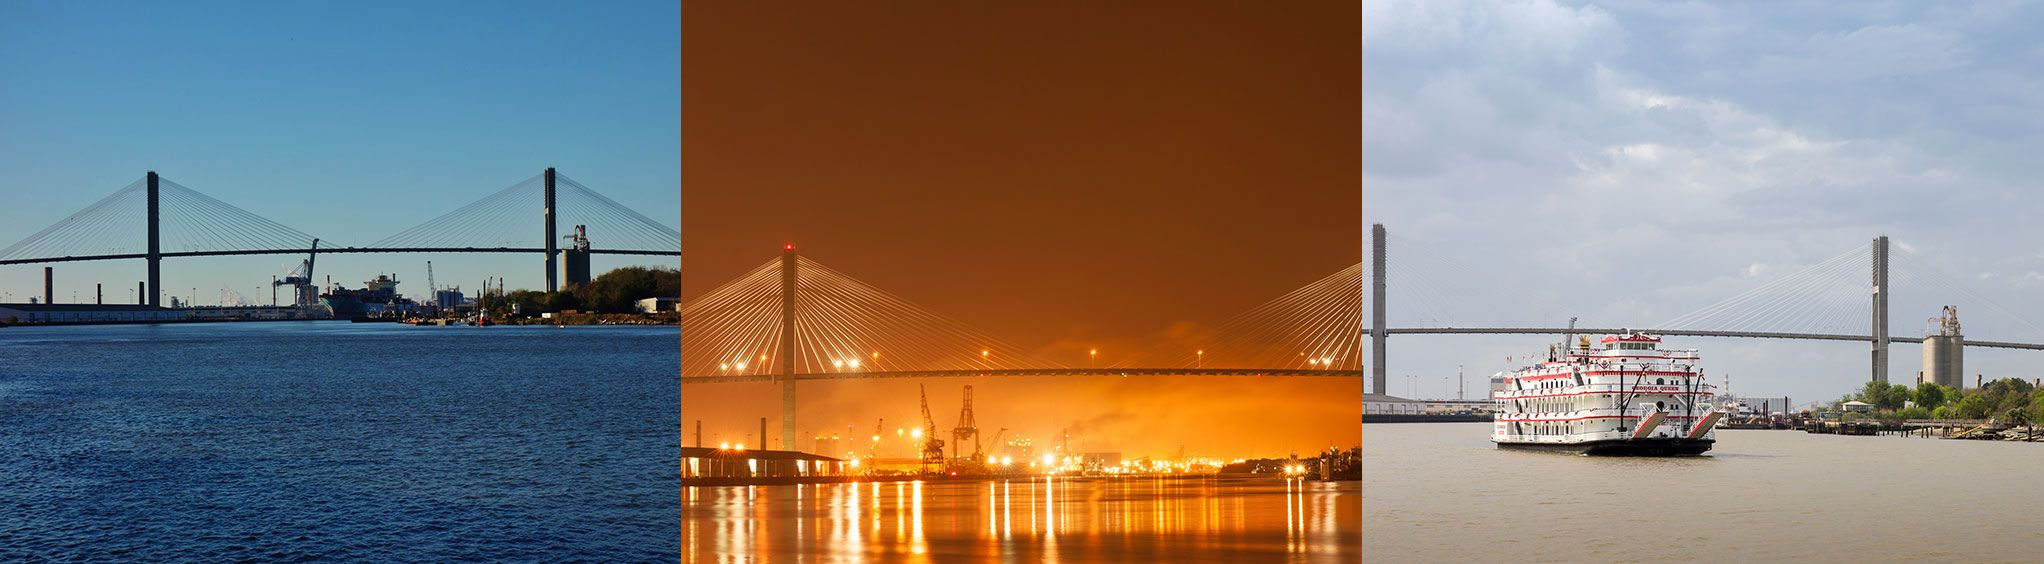 Talmadge Memorial - cable-stayed bridge in Savannah, GA